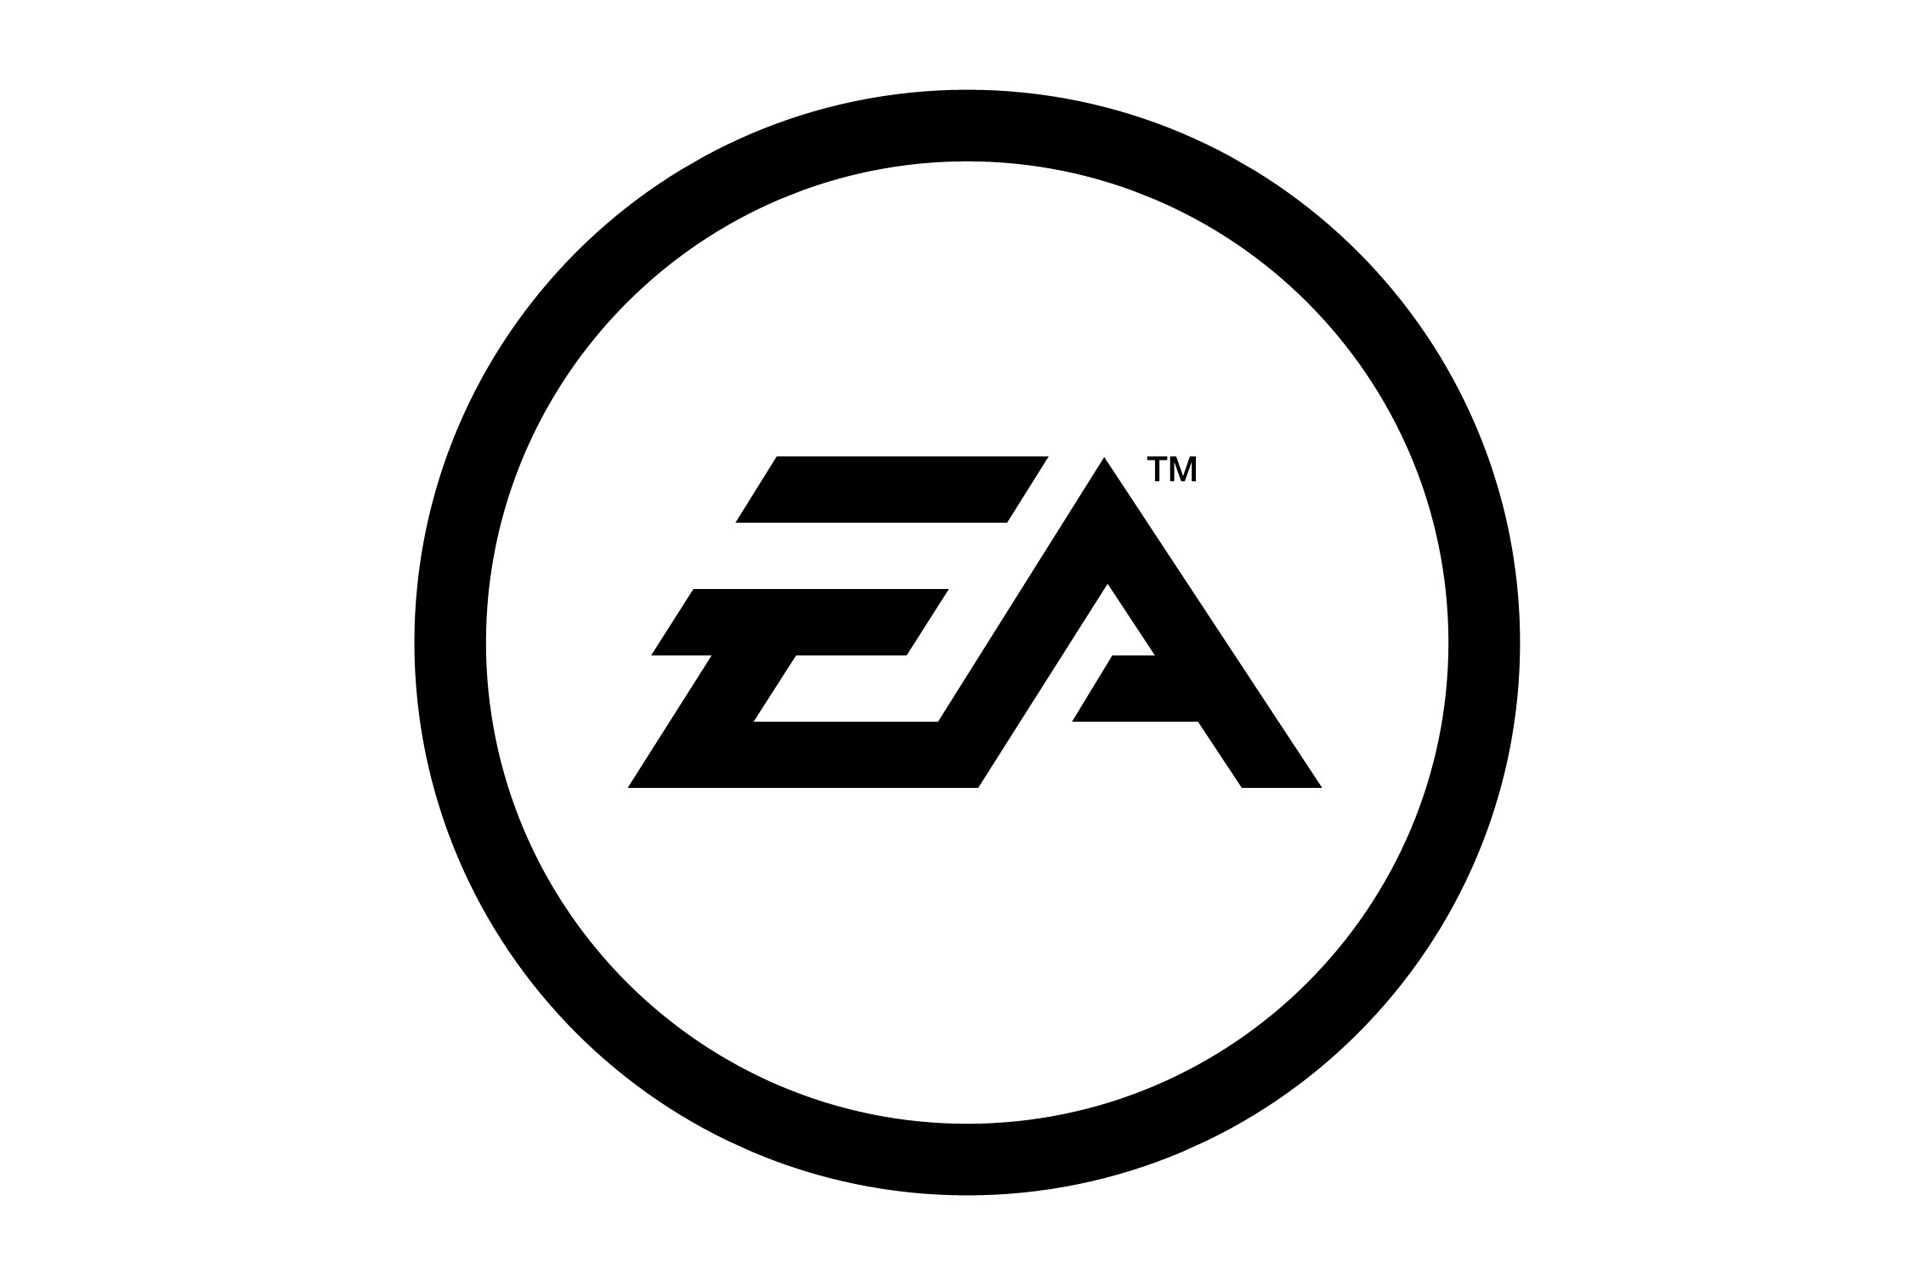 EA - Electronic Arts